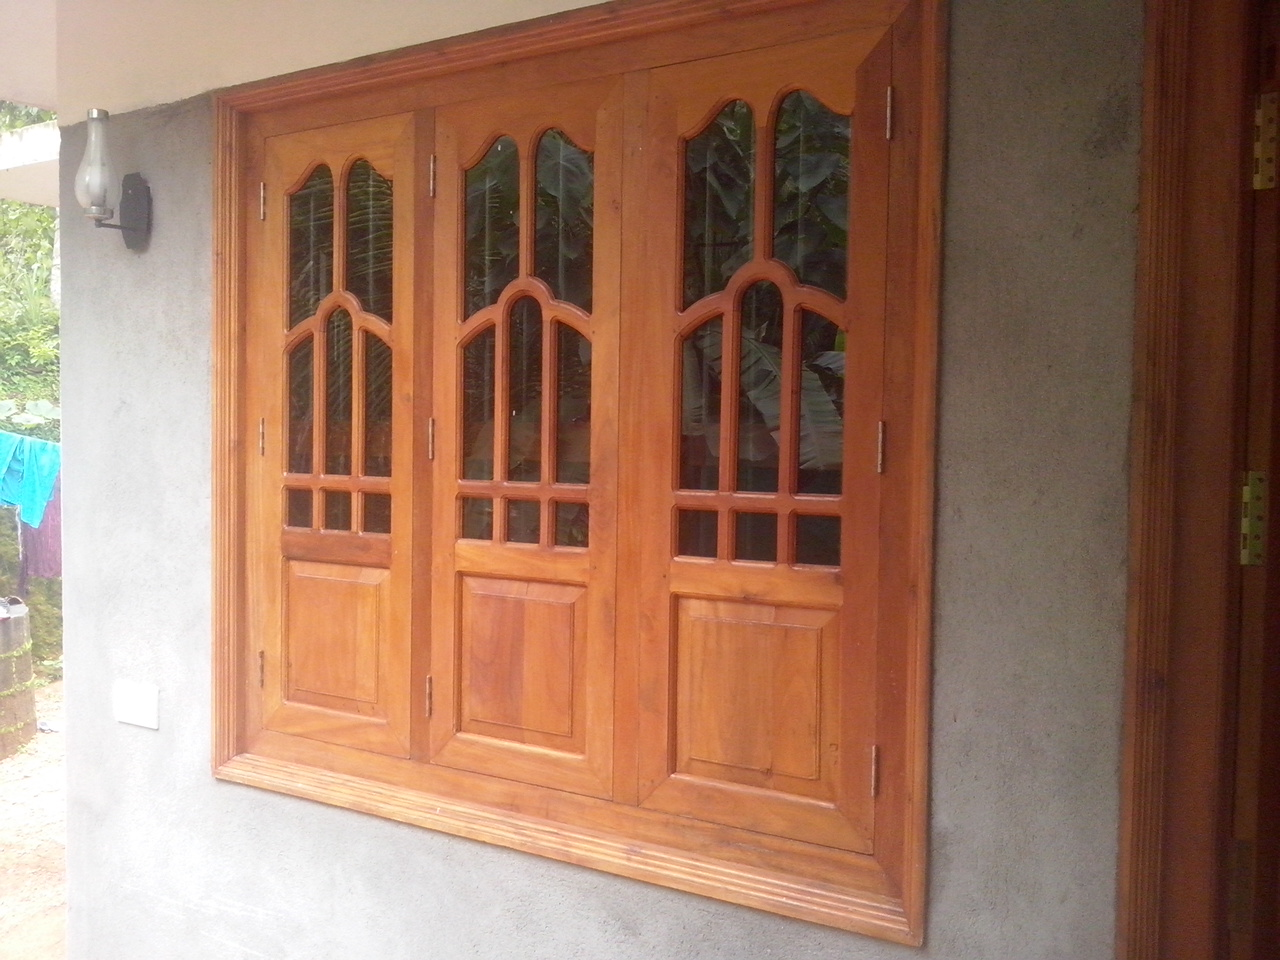 Bavas wood works kerala style wooden window door designs for Window design model